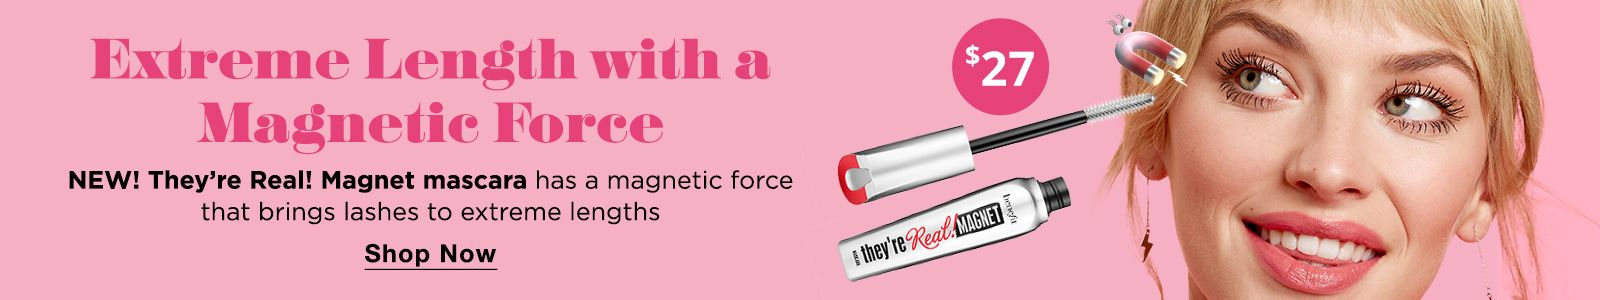 They're Real Magnet mascara, Shop Now